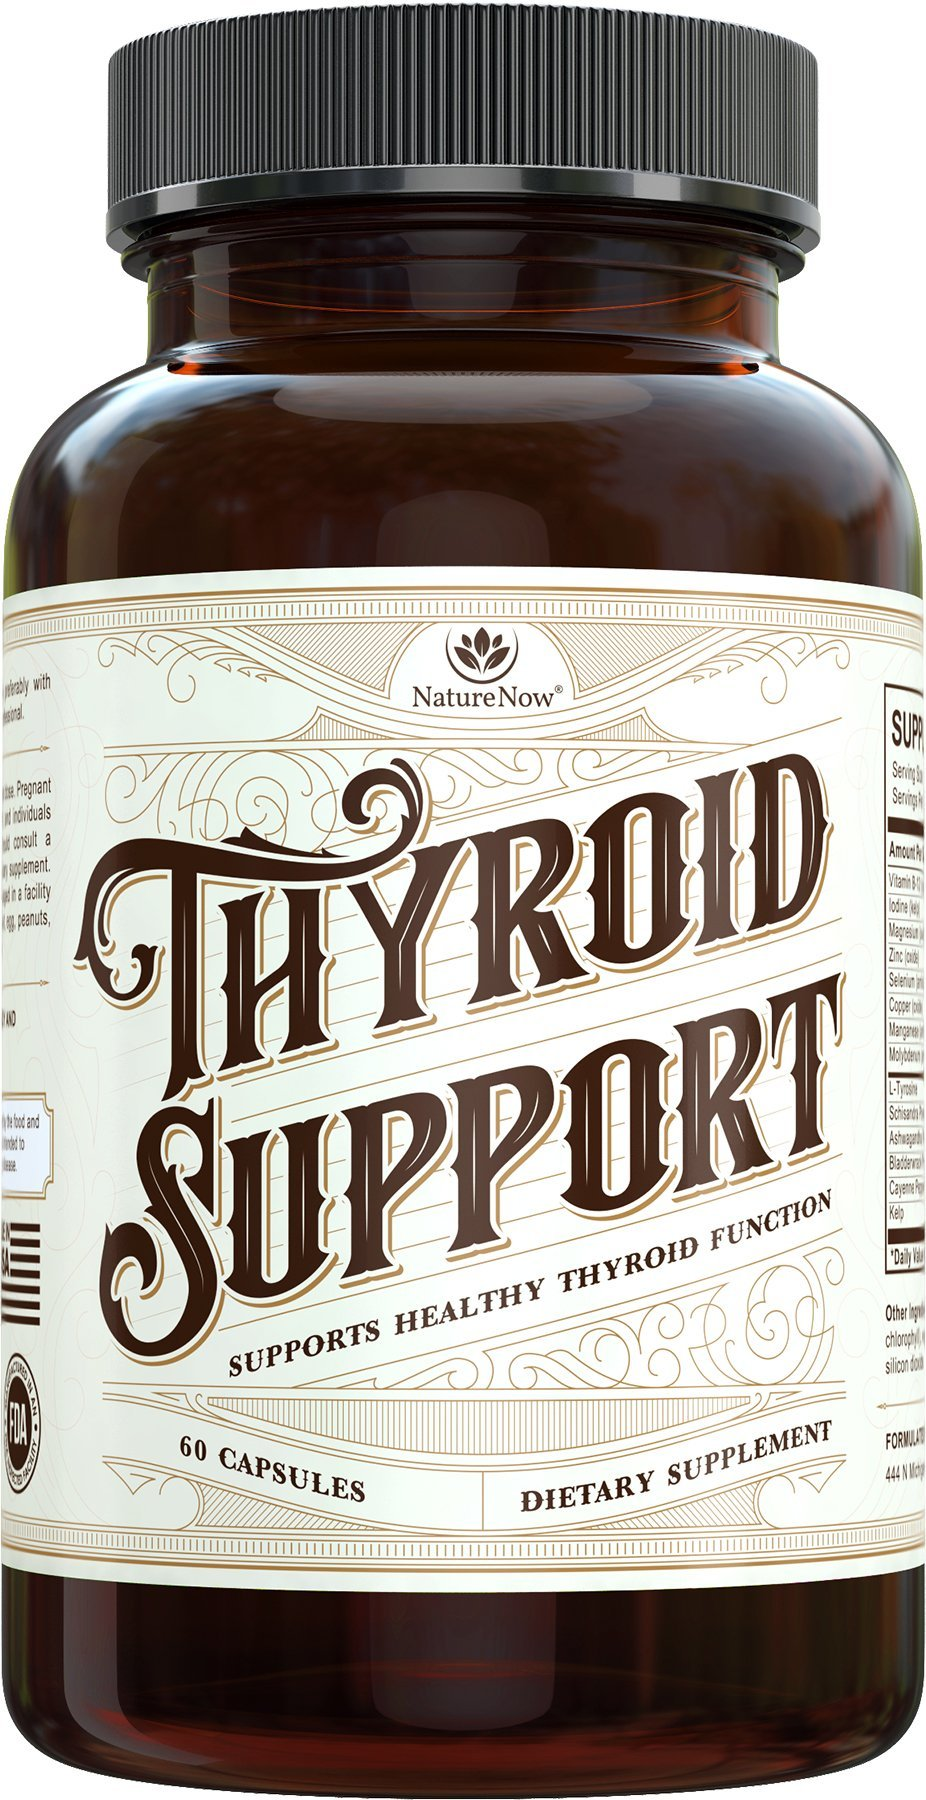 Thyroid Support By NatureNow Is The #1 Best Selling Natural Supplement Made In The USA To Help Men And Women With Overactive Function, Energy, Problems, Disorder, Hyperthyroidism And Hypothyroidism